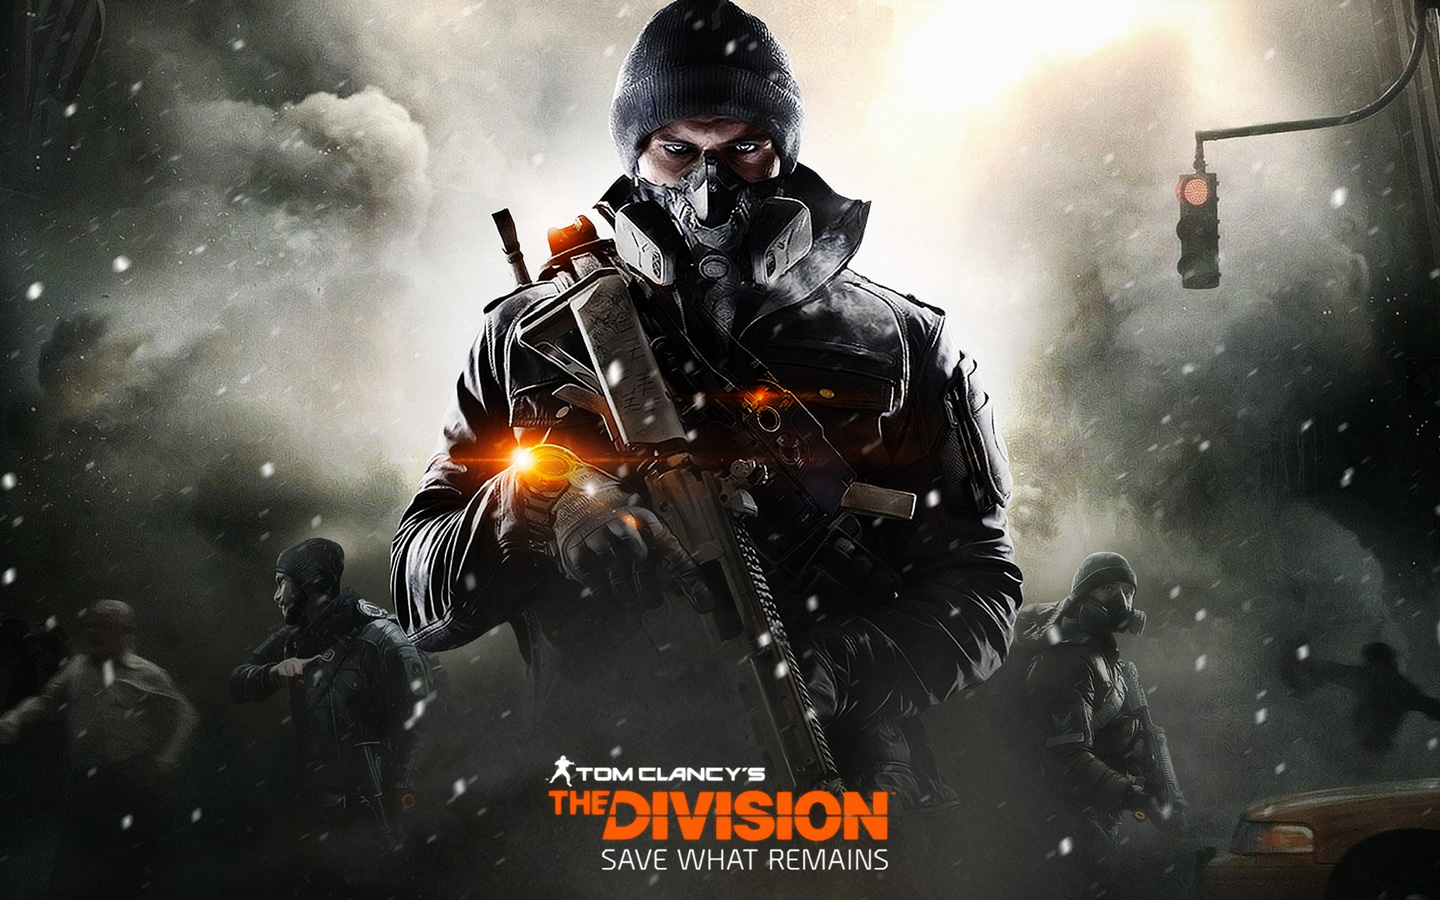 Free The Division Wallpaper in 1440x900